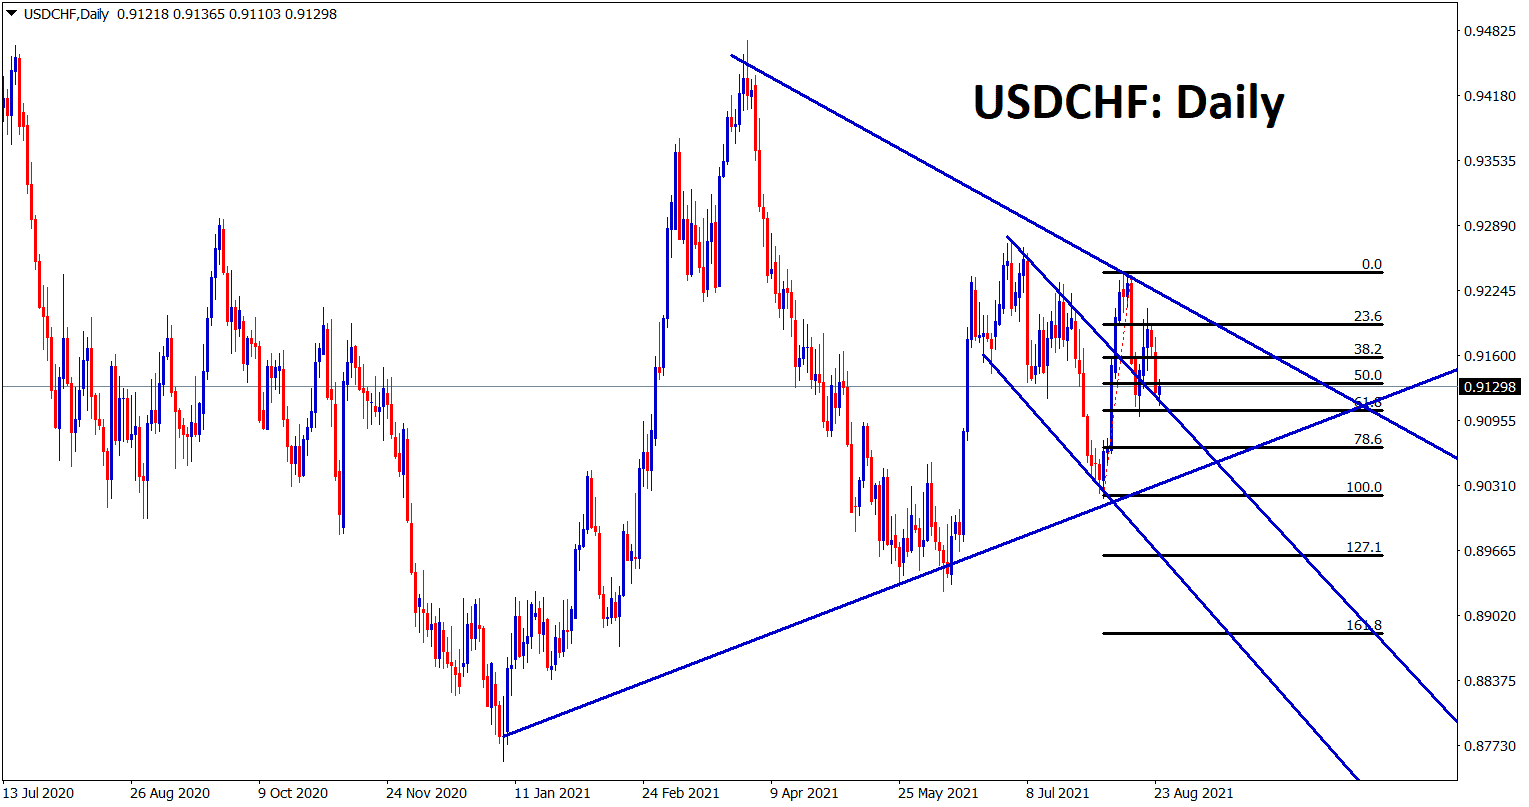 USDCHF has retested the minor descending channel twice wait for breakout or reversal from that zone